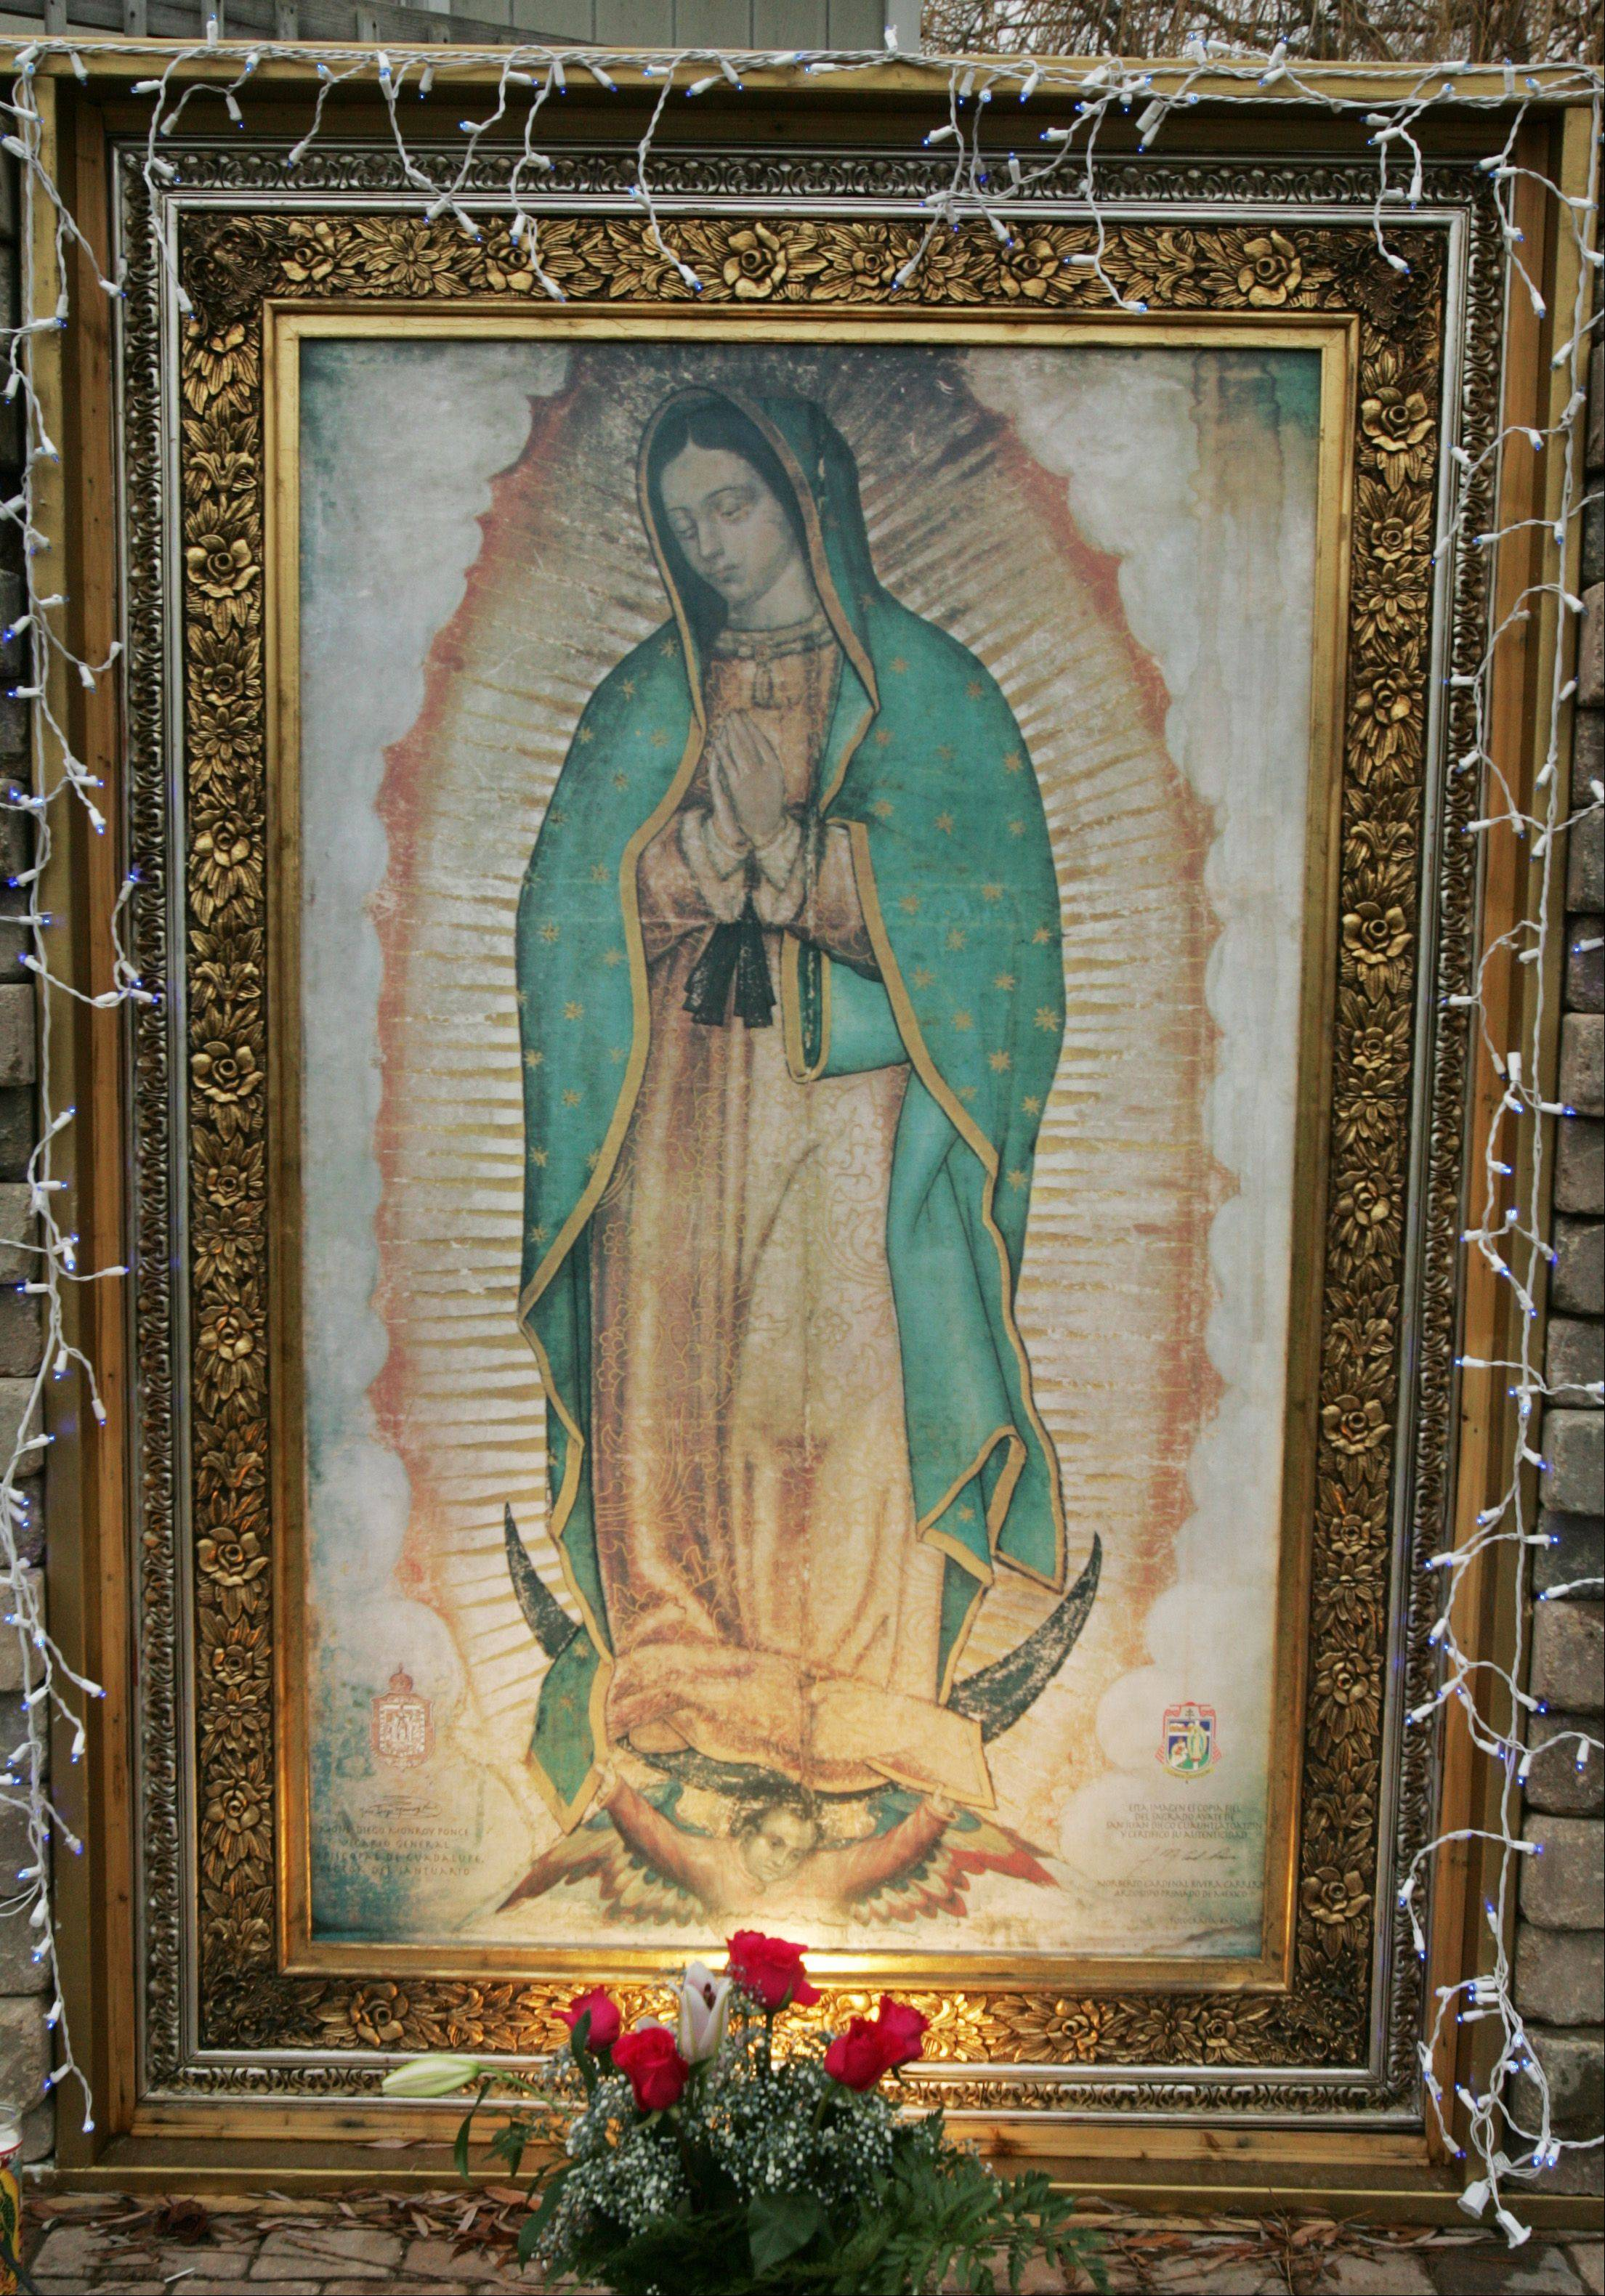 Al Nava and his wife, Fabby, have an exact replica of the Virgin of Guadalupe on display in the backyard of their Elgin home. The original image of Our Lady of Guadalupe hangs in the Basilica of Guadalupe in Mexico City.